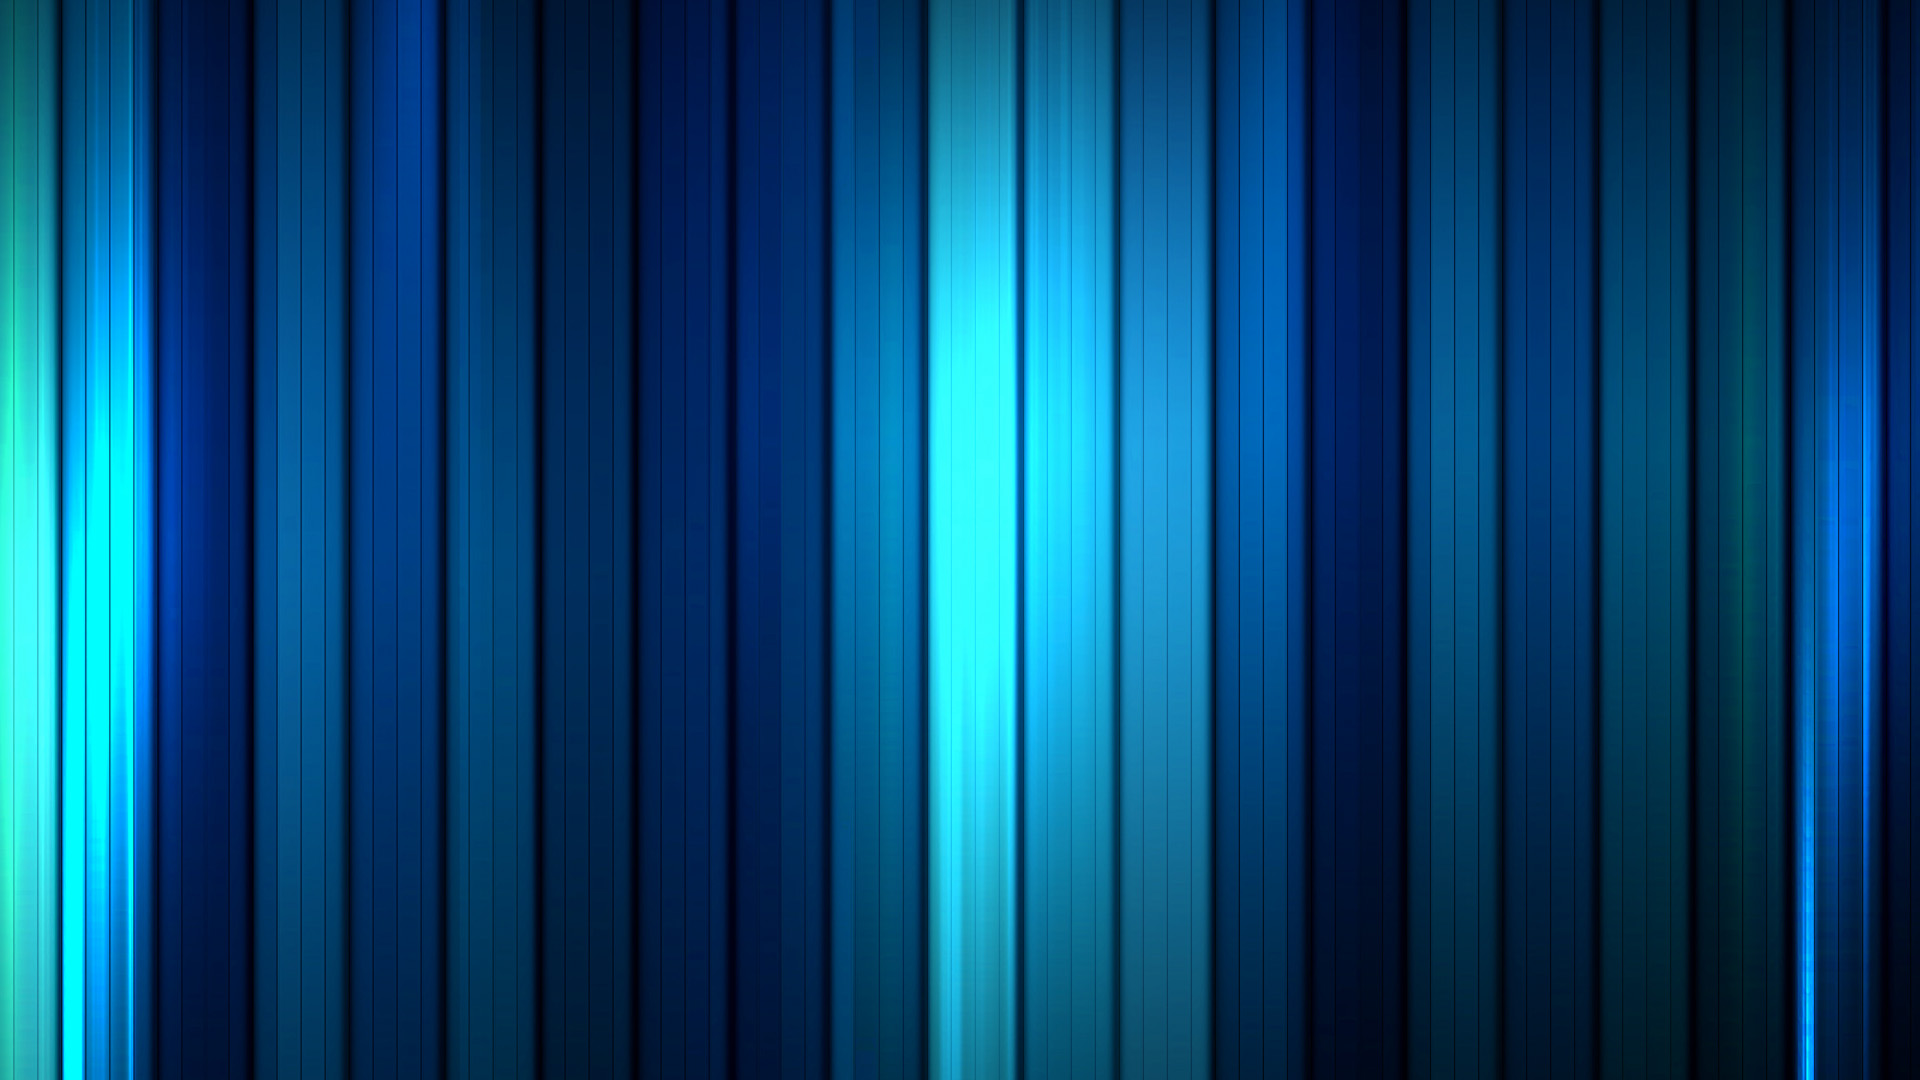 Shades Of Blue Wallpaper High Definition High Quality